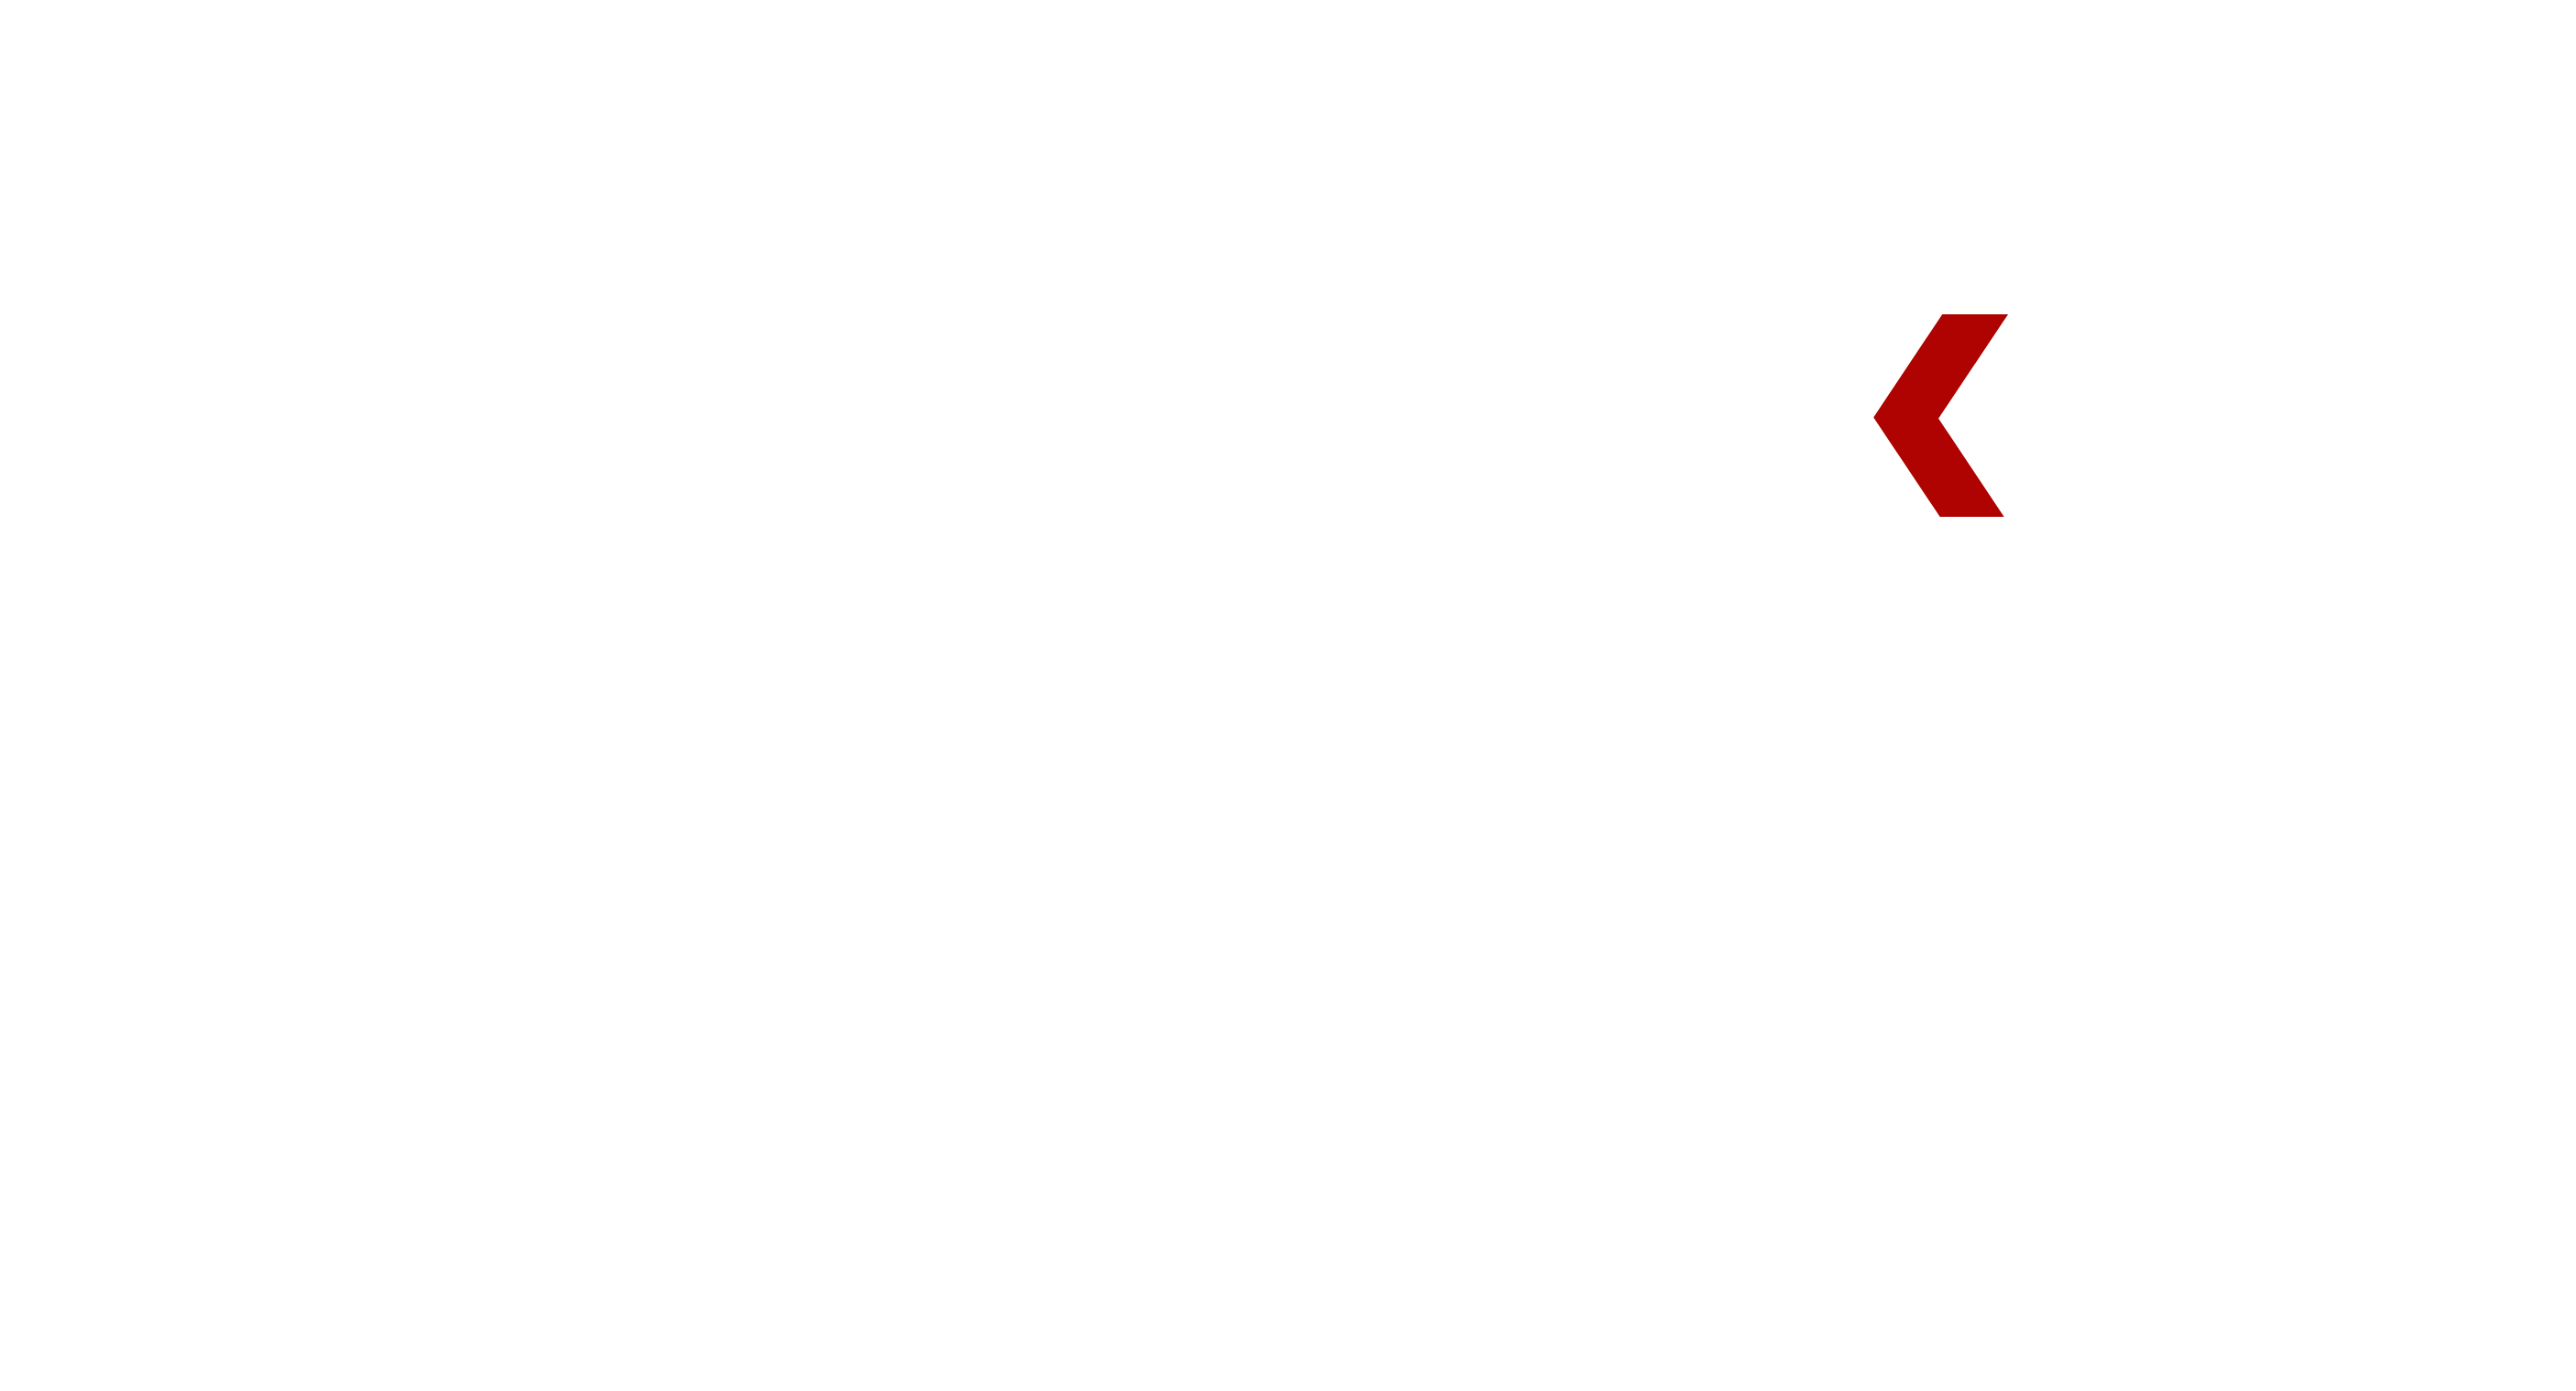 The secret to successful marketing is saying the right thing in the right way in the right place.